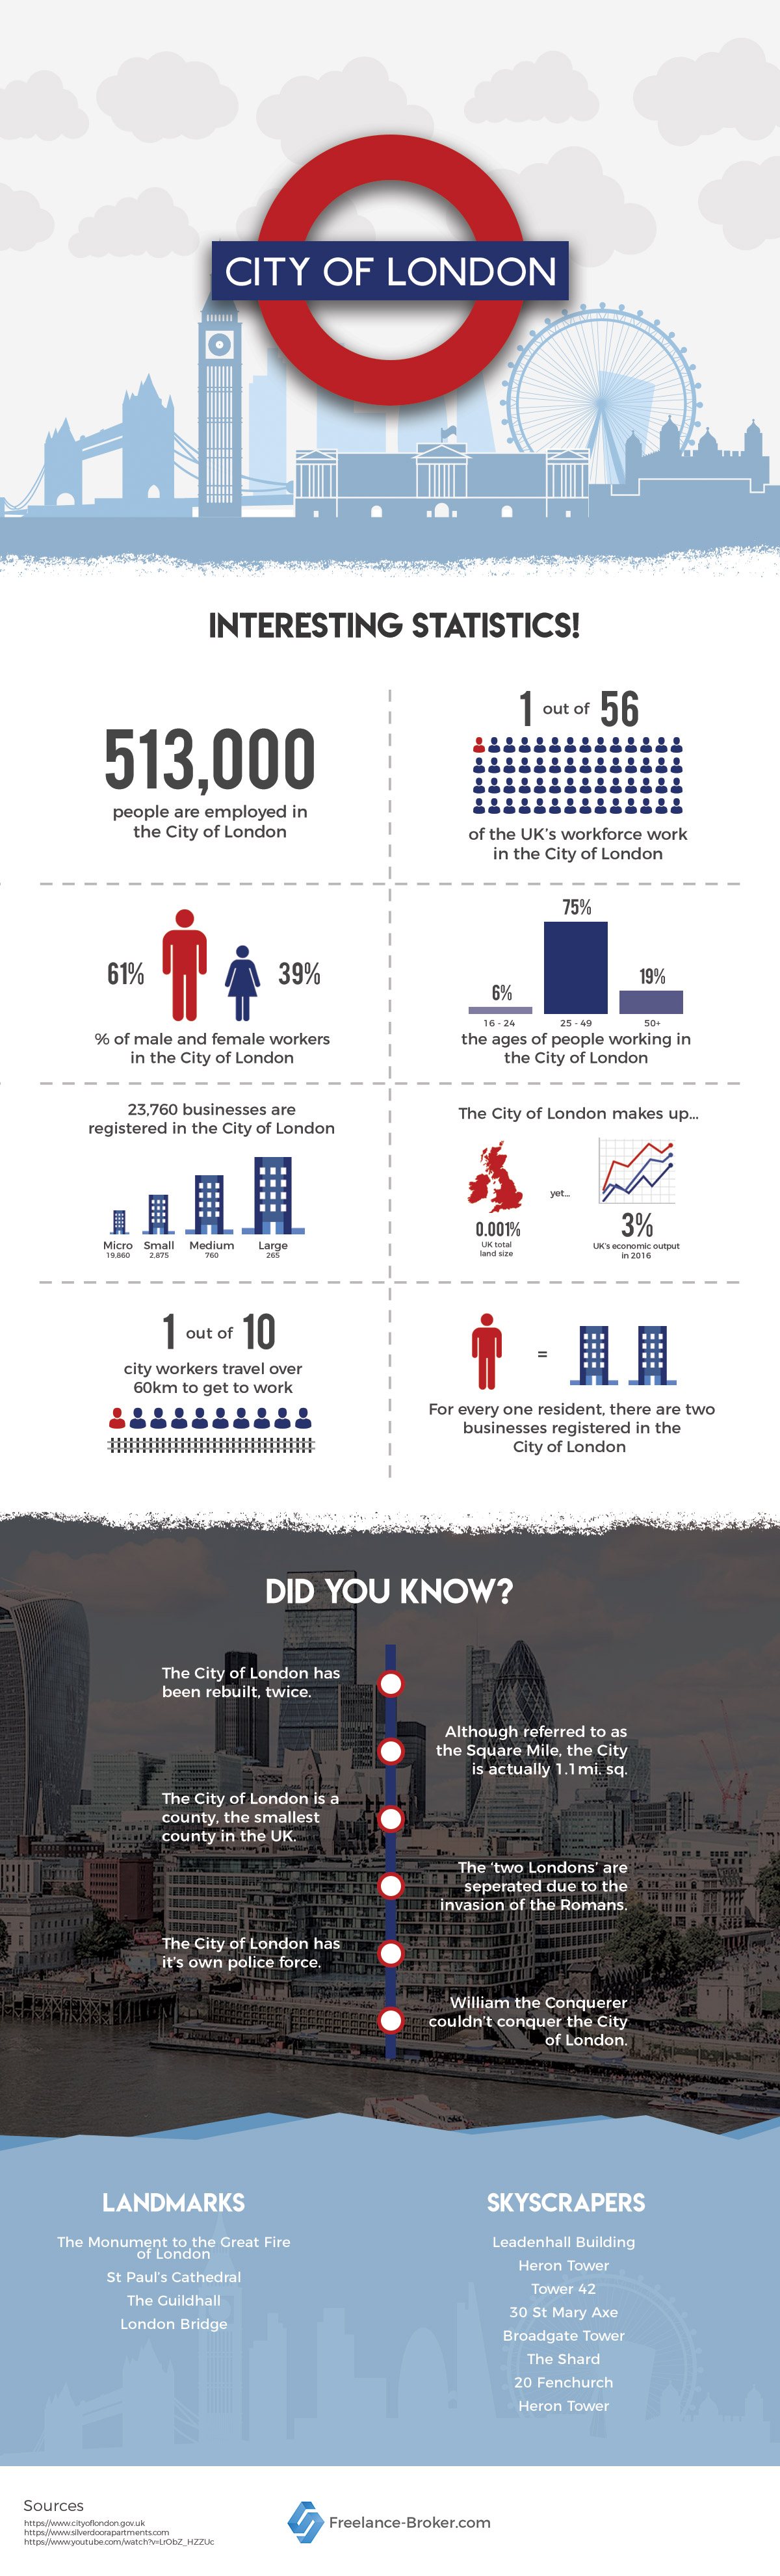 Interesting Facts Statistics City of London